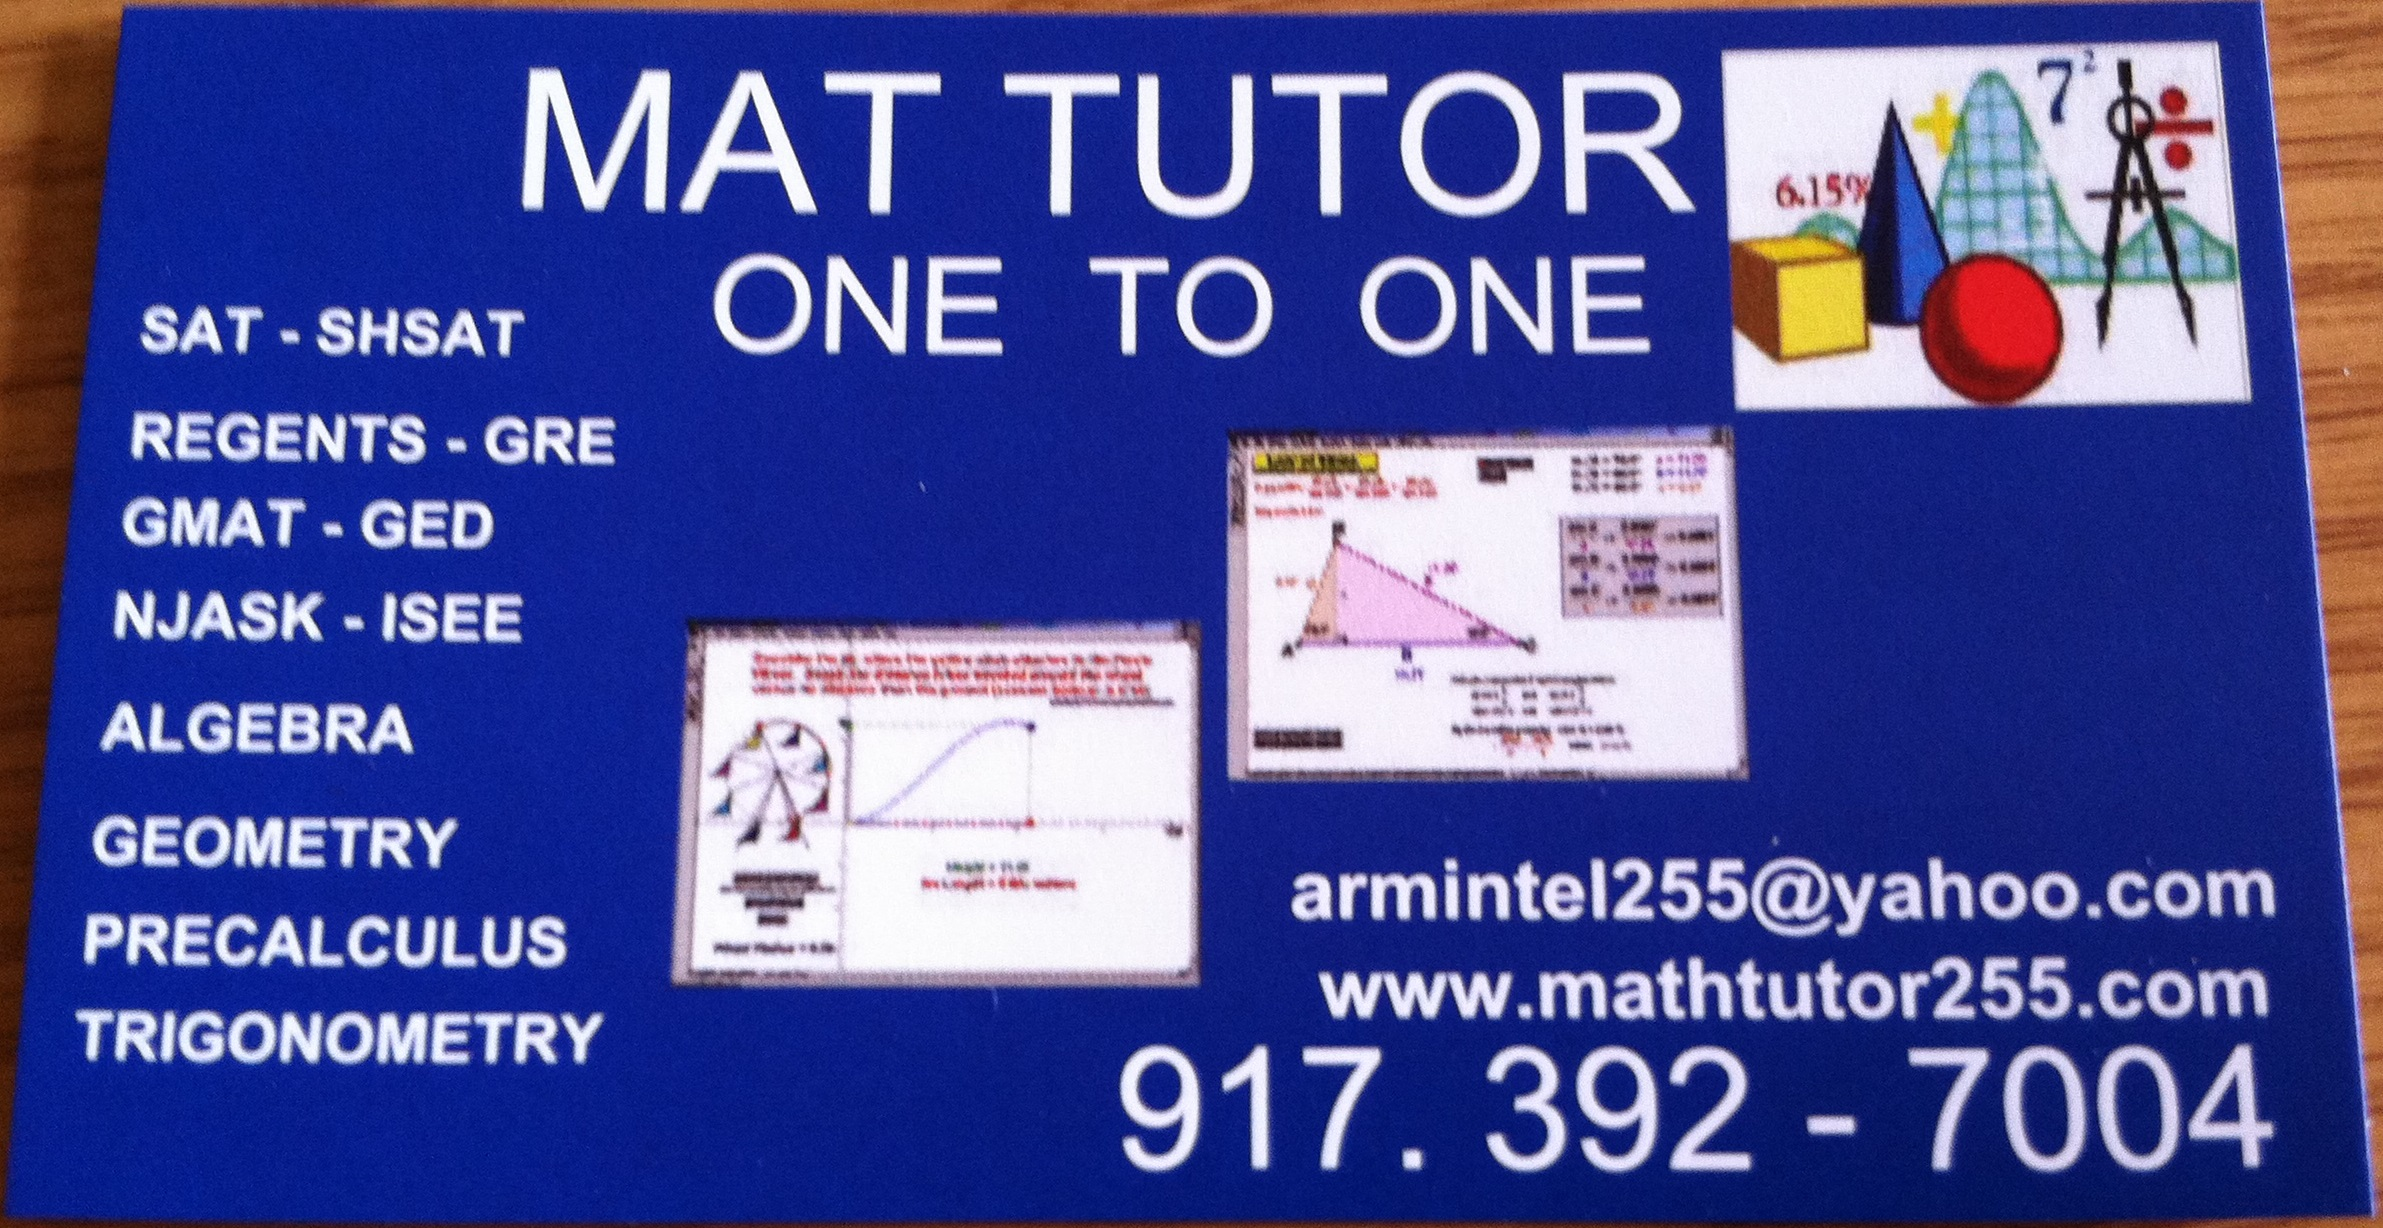 Math tutor business card arts arts premier car care legacy of clean math tutor hugs for brady math tutor business cards samples inspirational famous colourmoves